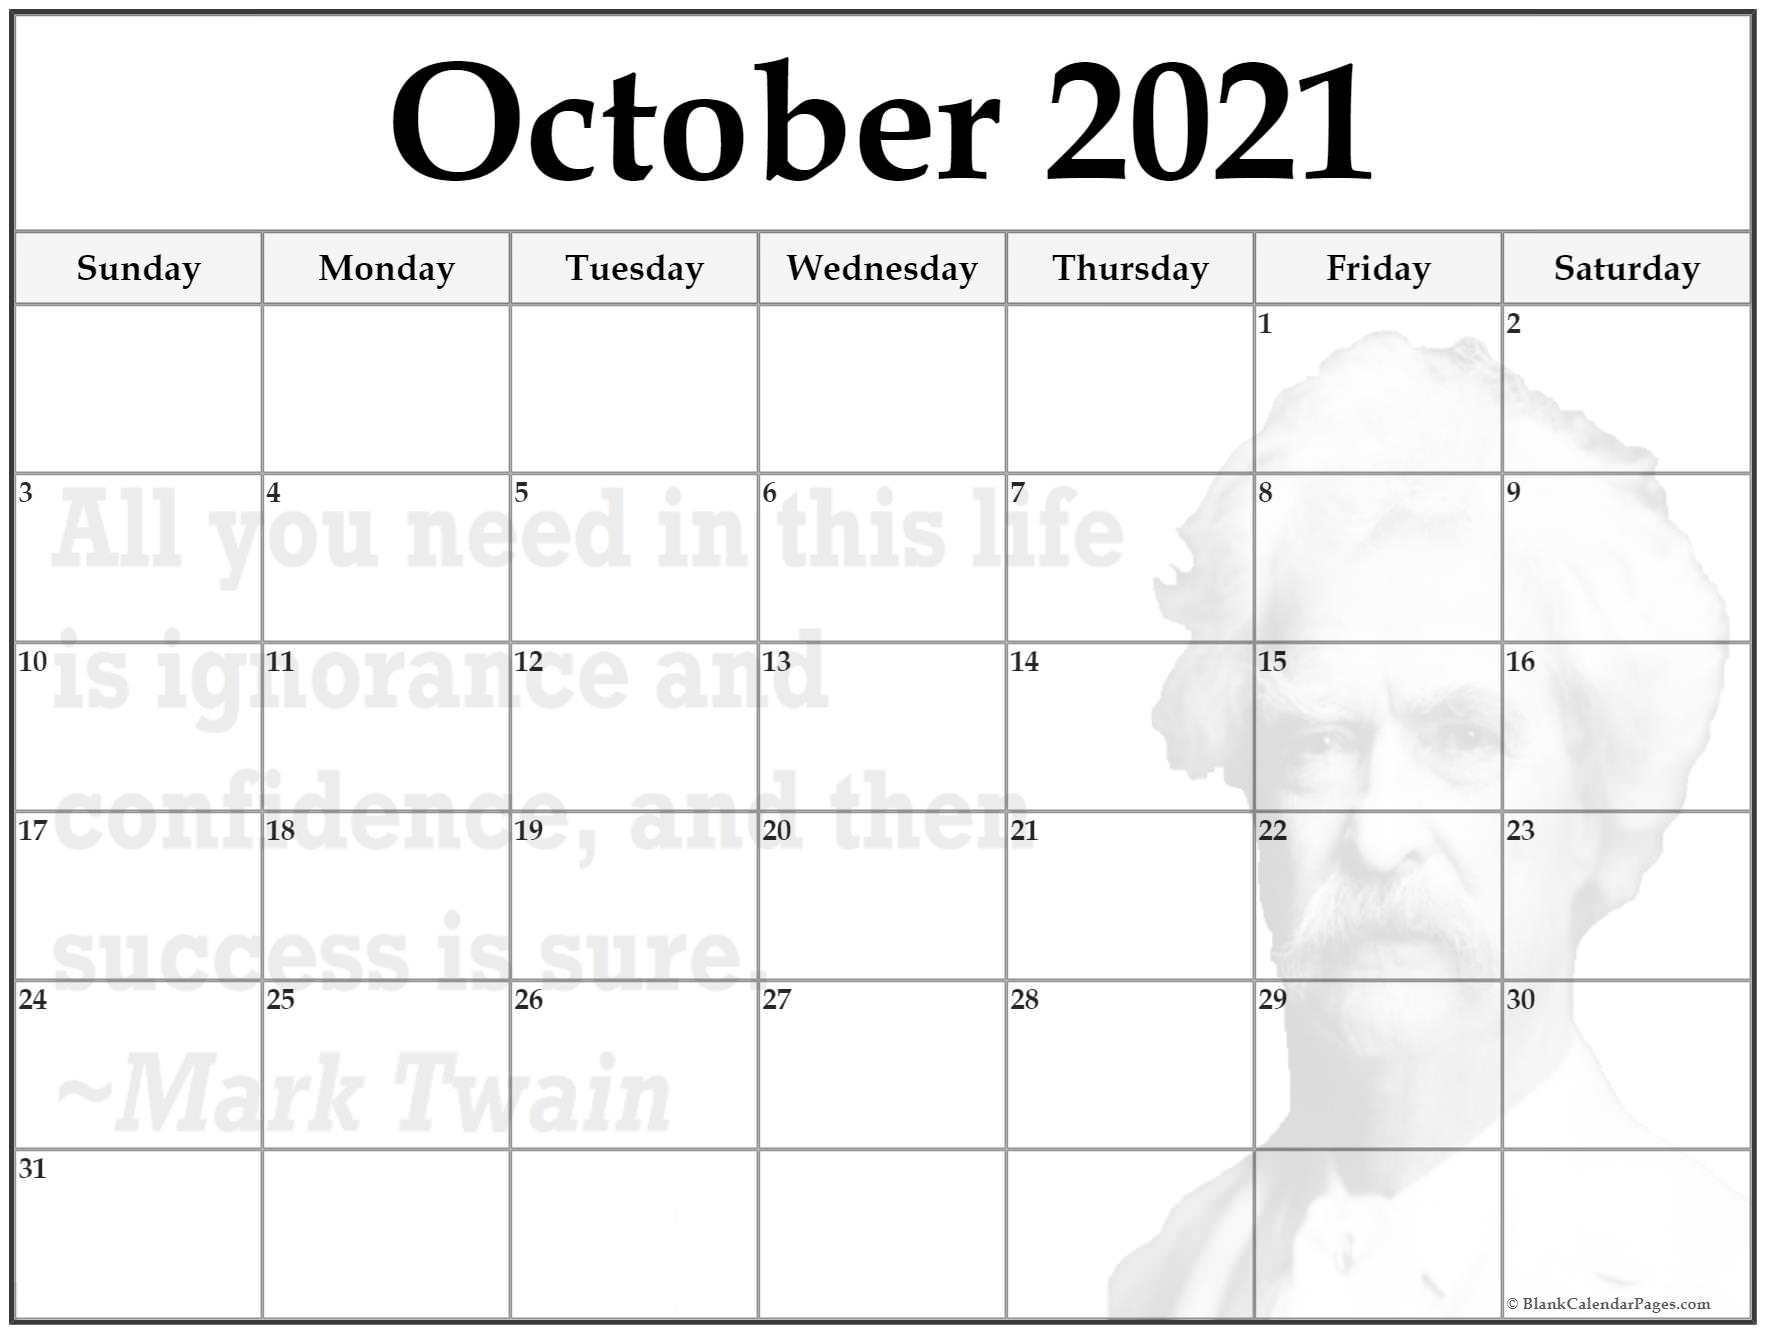 October 2021 monthly quote calendar printable. All you need in this life is ignorance and confidence, and then success is sure. ~Mark Twain